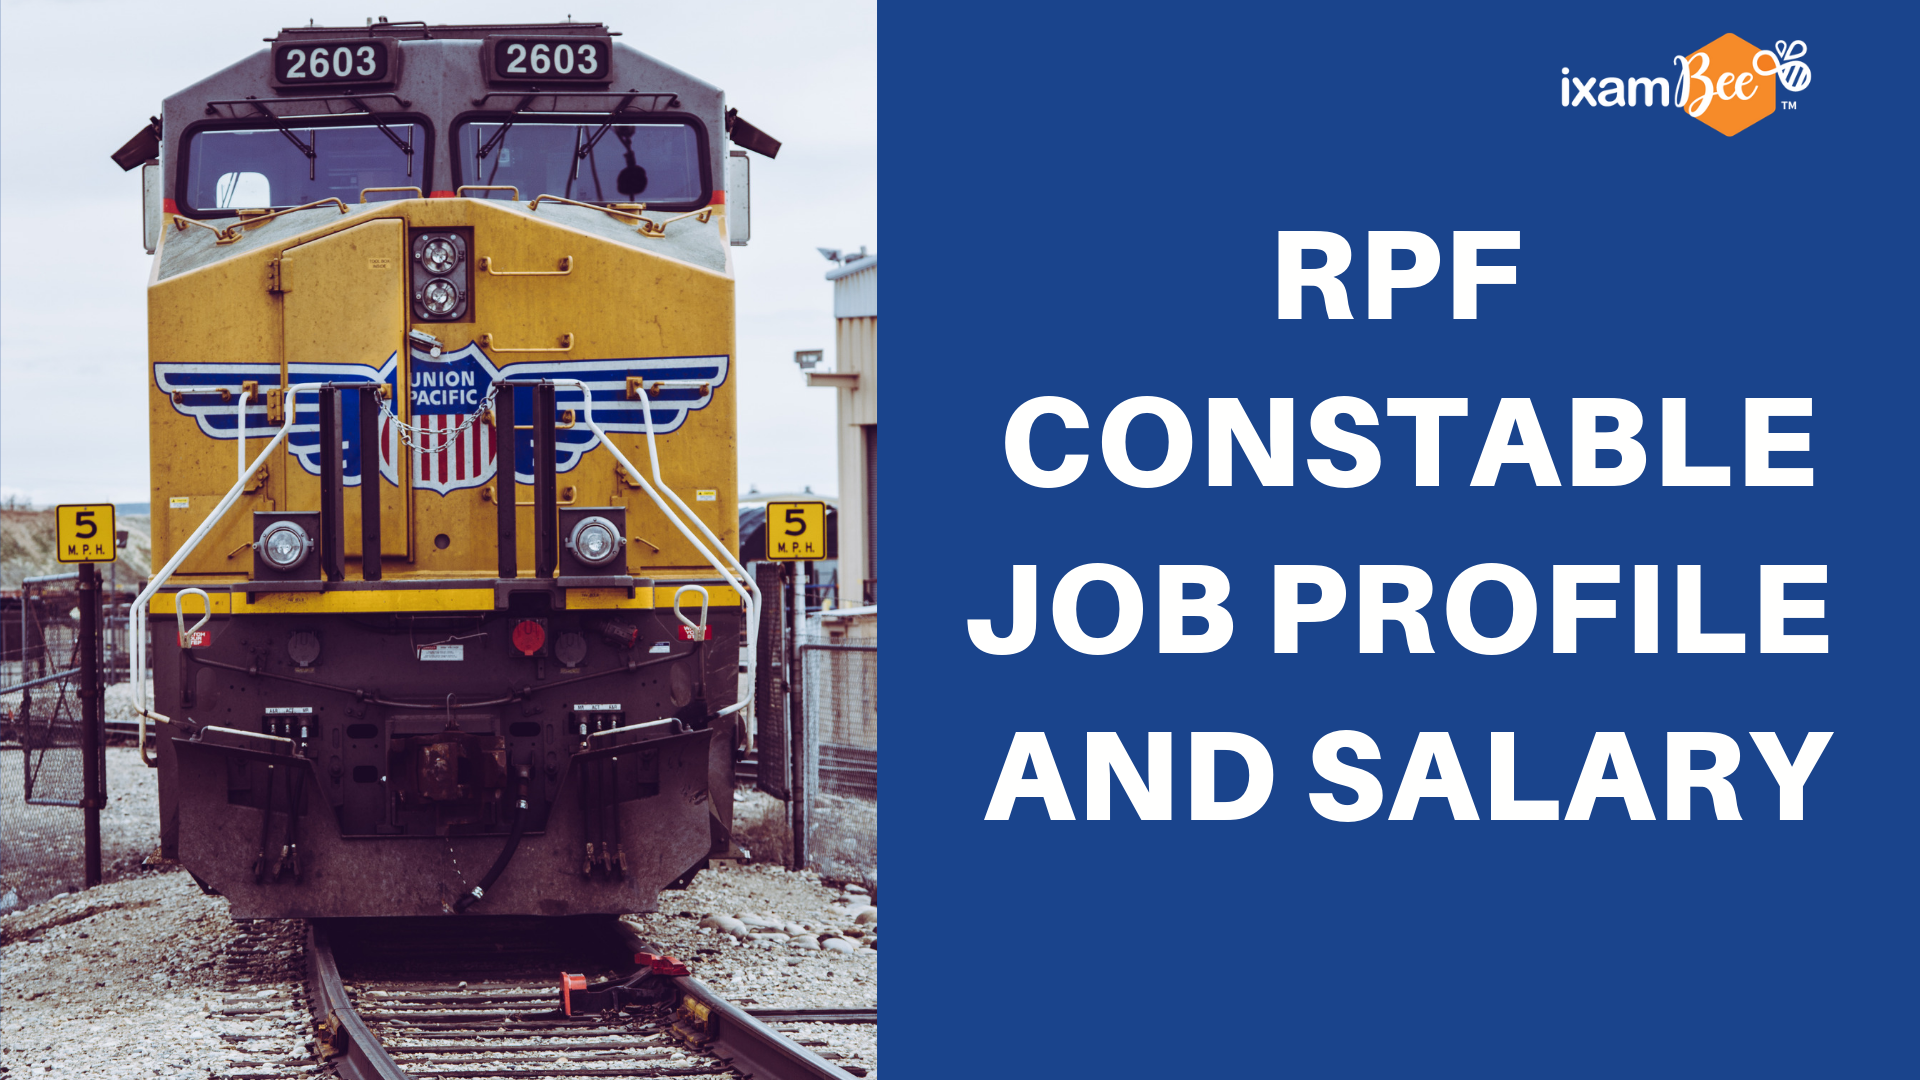 RPF CONSTABLE SALARY & JOB PROFILE - ixambee-blog